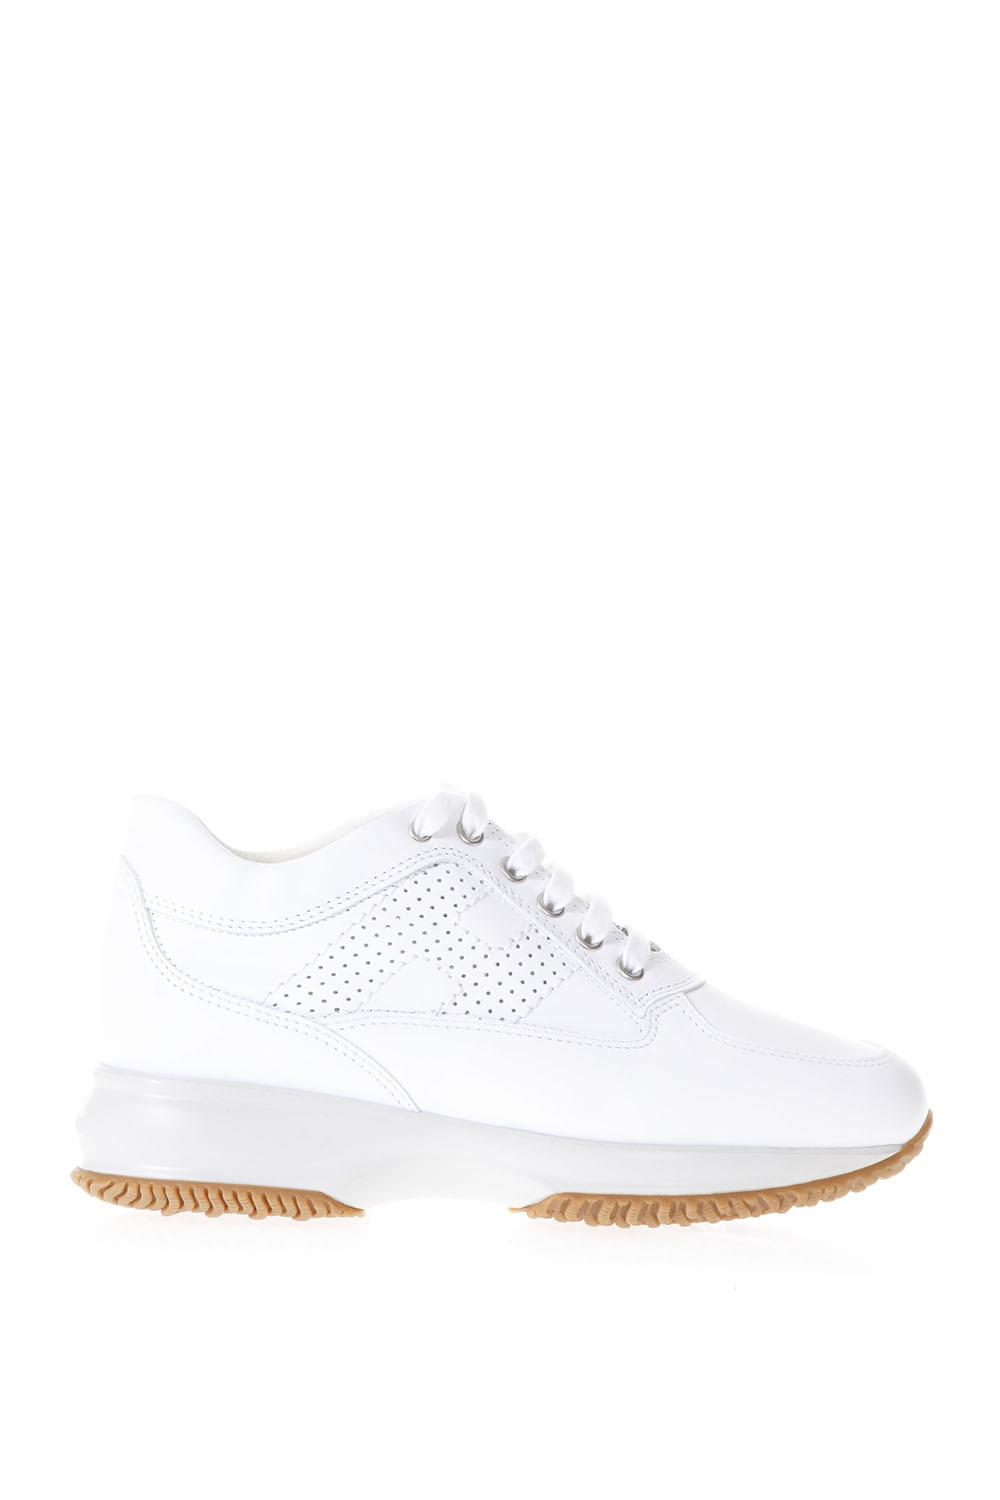 Hogan Hogan Interactive White Suede & Leather Sneakers